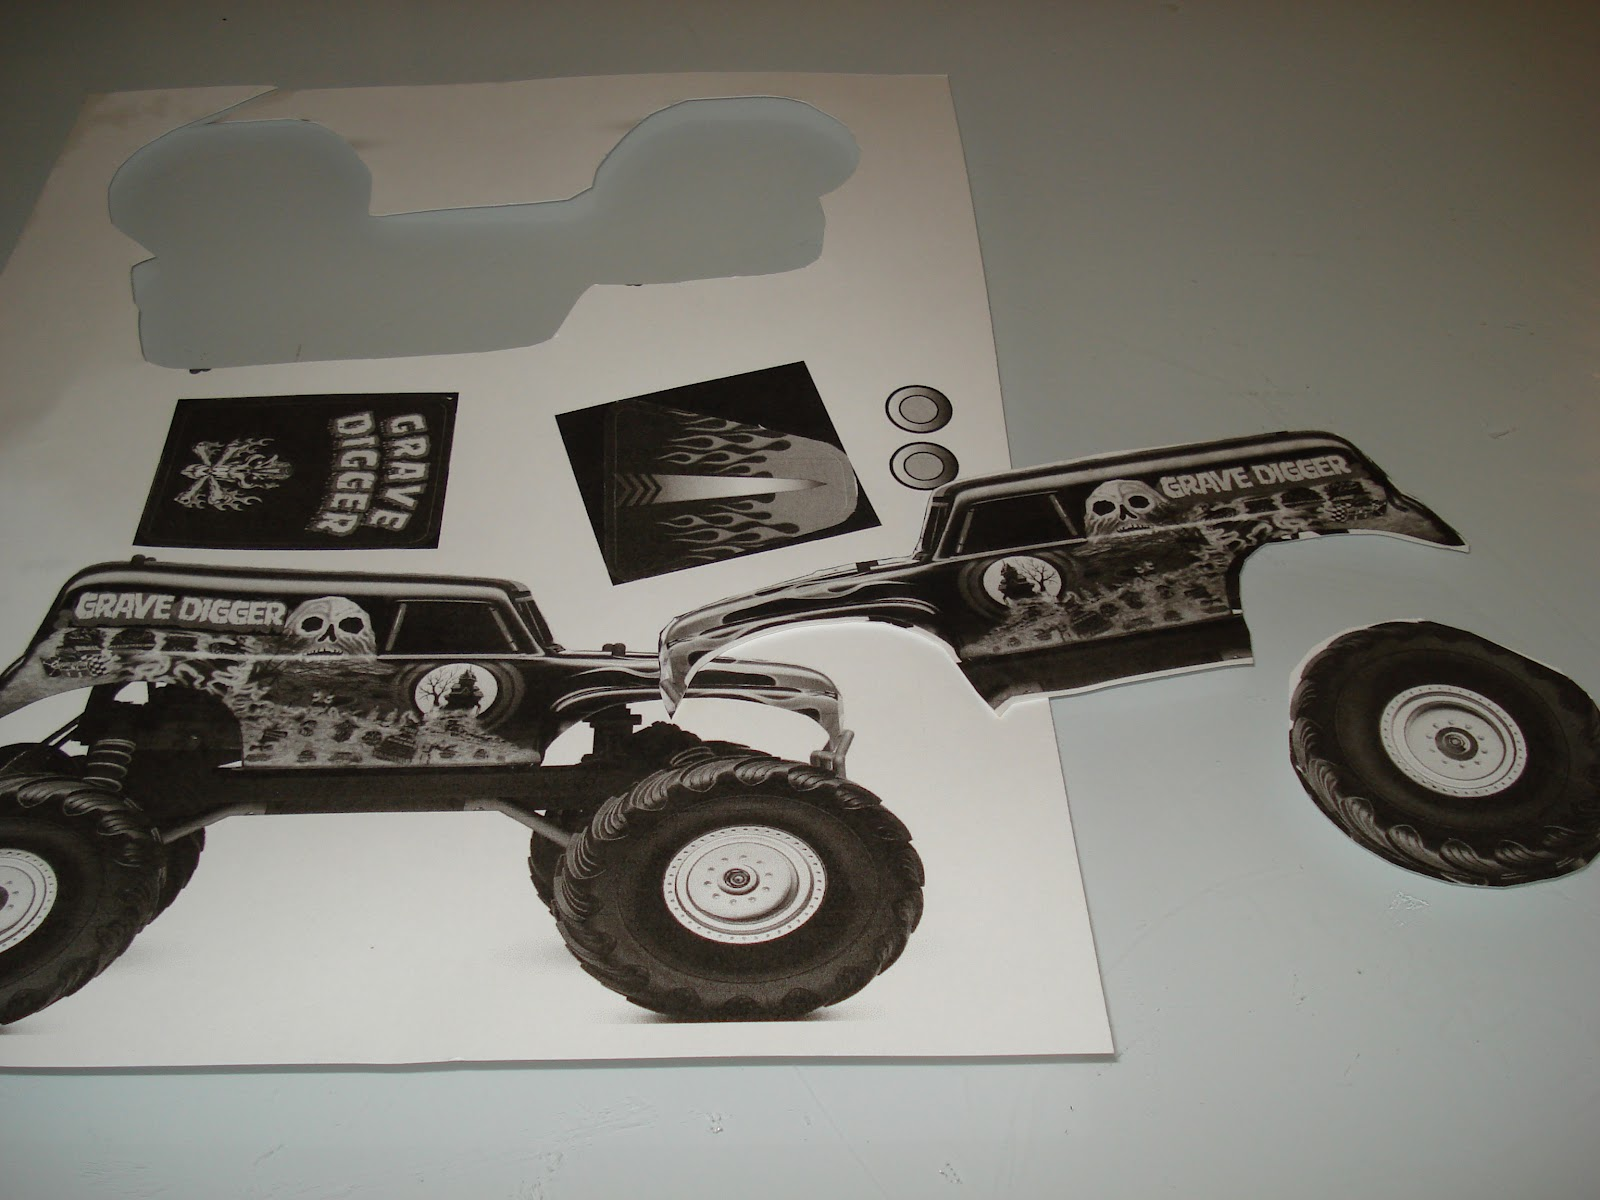 digger cake template - rooneygirl cupcakes starting from scratch monster truck